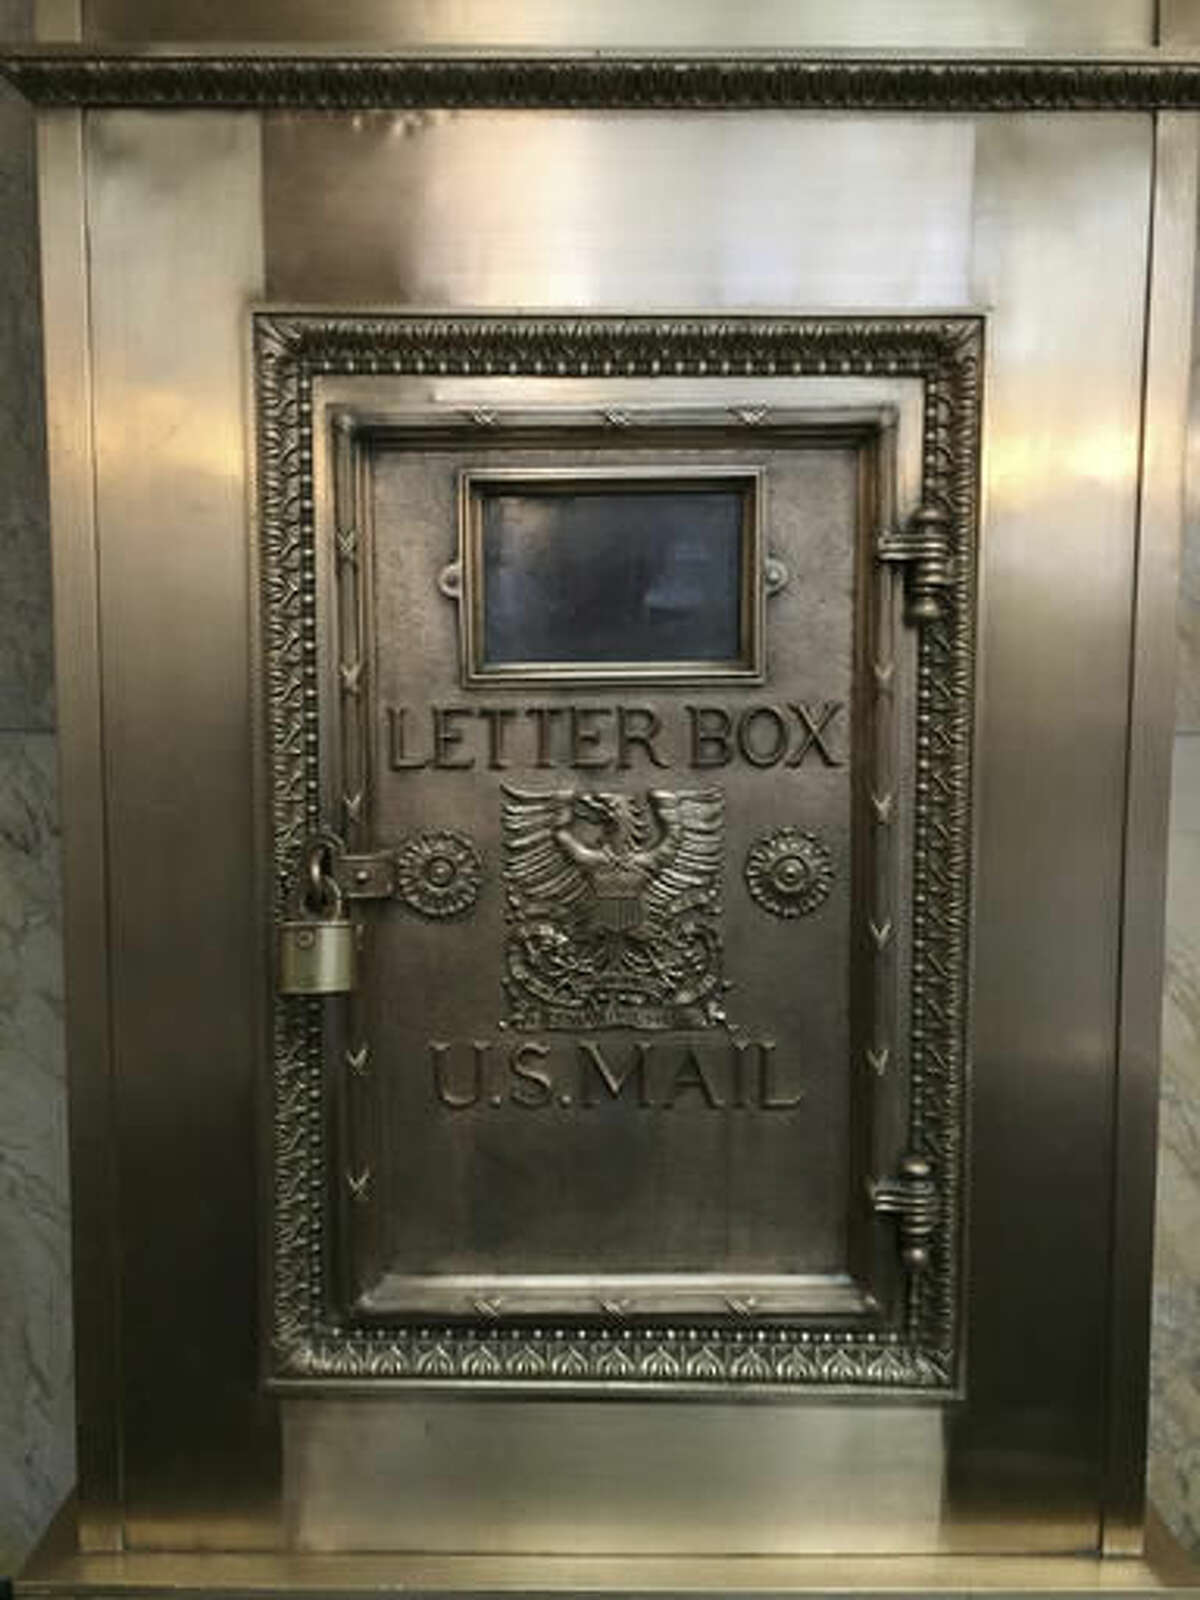 In this photo taken Oct. 25, 2016, an old mail chute in a hallway at the Trump International Hotel in Washington. The hotel is located in a historic 1899 building called the Old Post Office that was once part of the postal system. The Trump hotel organization made a deal with federal agencies to renovate the building and operate it as a hotel. While many elements like this mail chute have been preserved, there's also been some criticism that the renovation covers up some of the original decor, such as carpeting over marble flooring and drapes over walls, while adding too much glitz, like gold leaf. Donald Trump was scheduled to appear at the hotel Wednesday, Oct. 26, 2016, for a ribbon cutting. (AP Photo/Beth J. Harpaz)